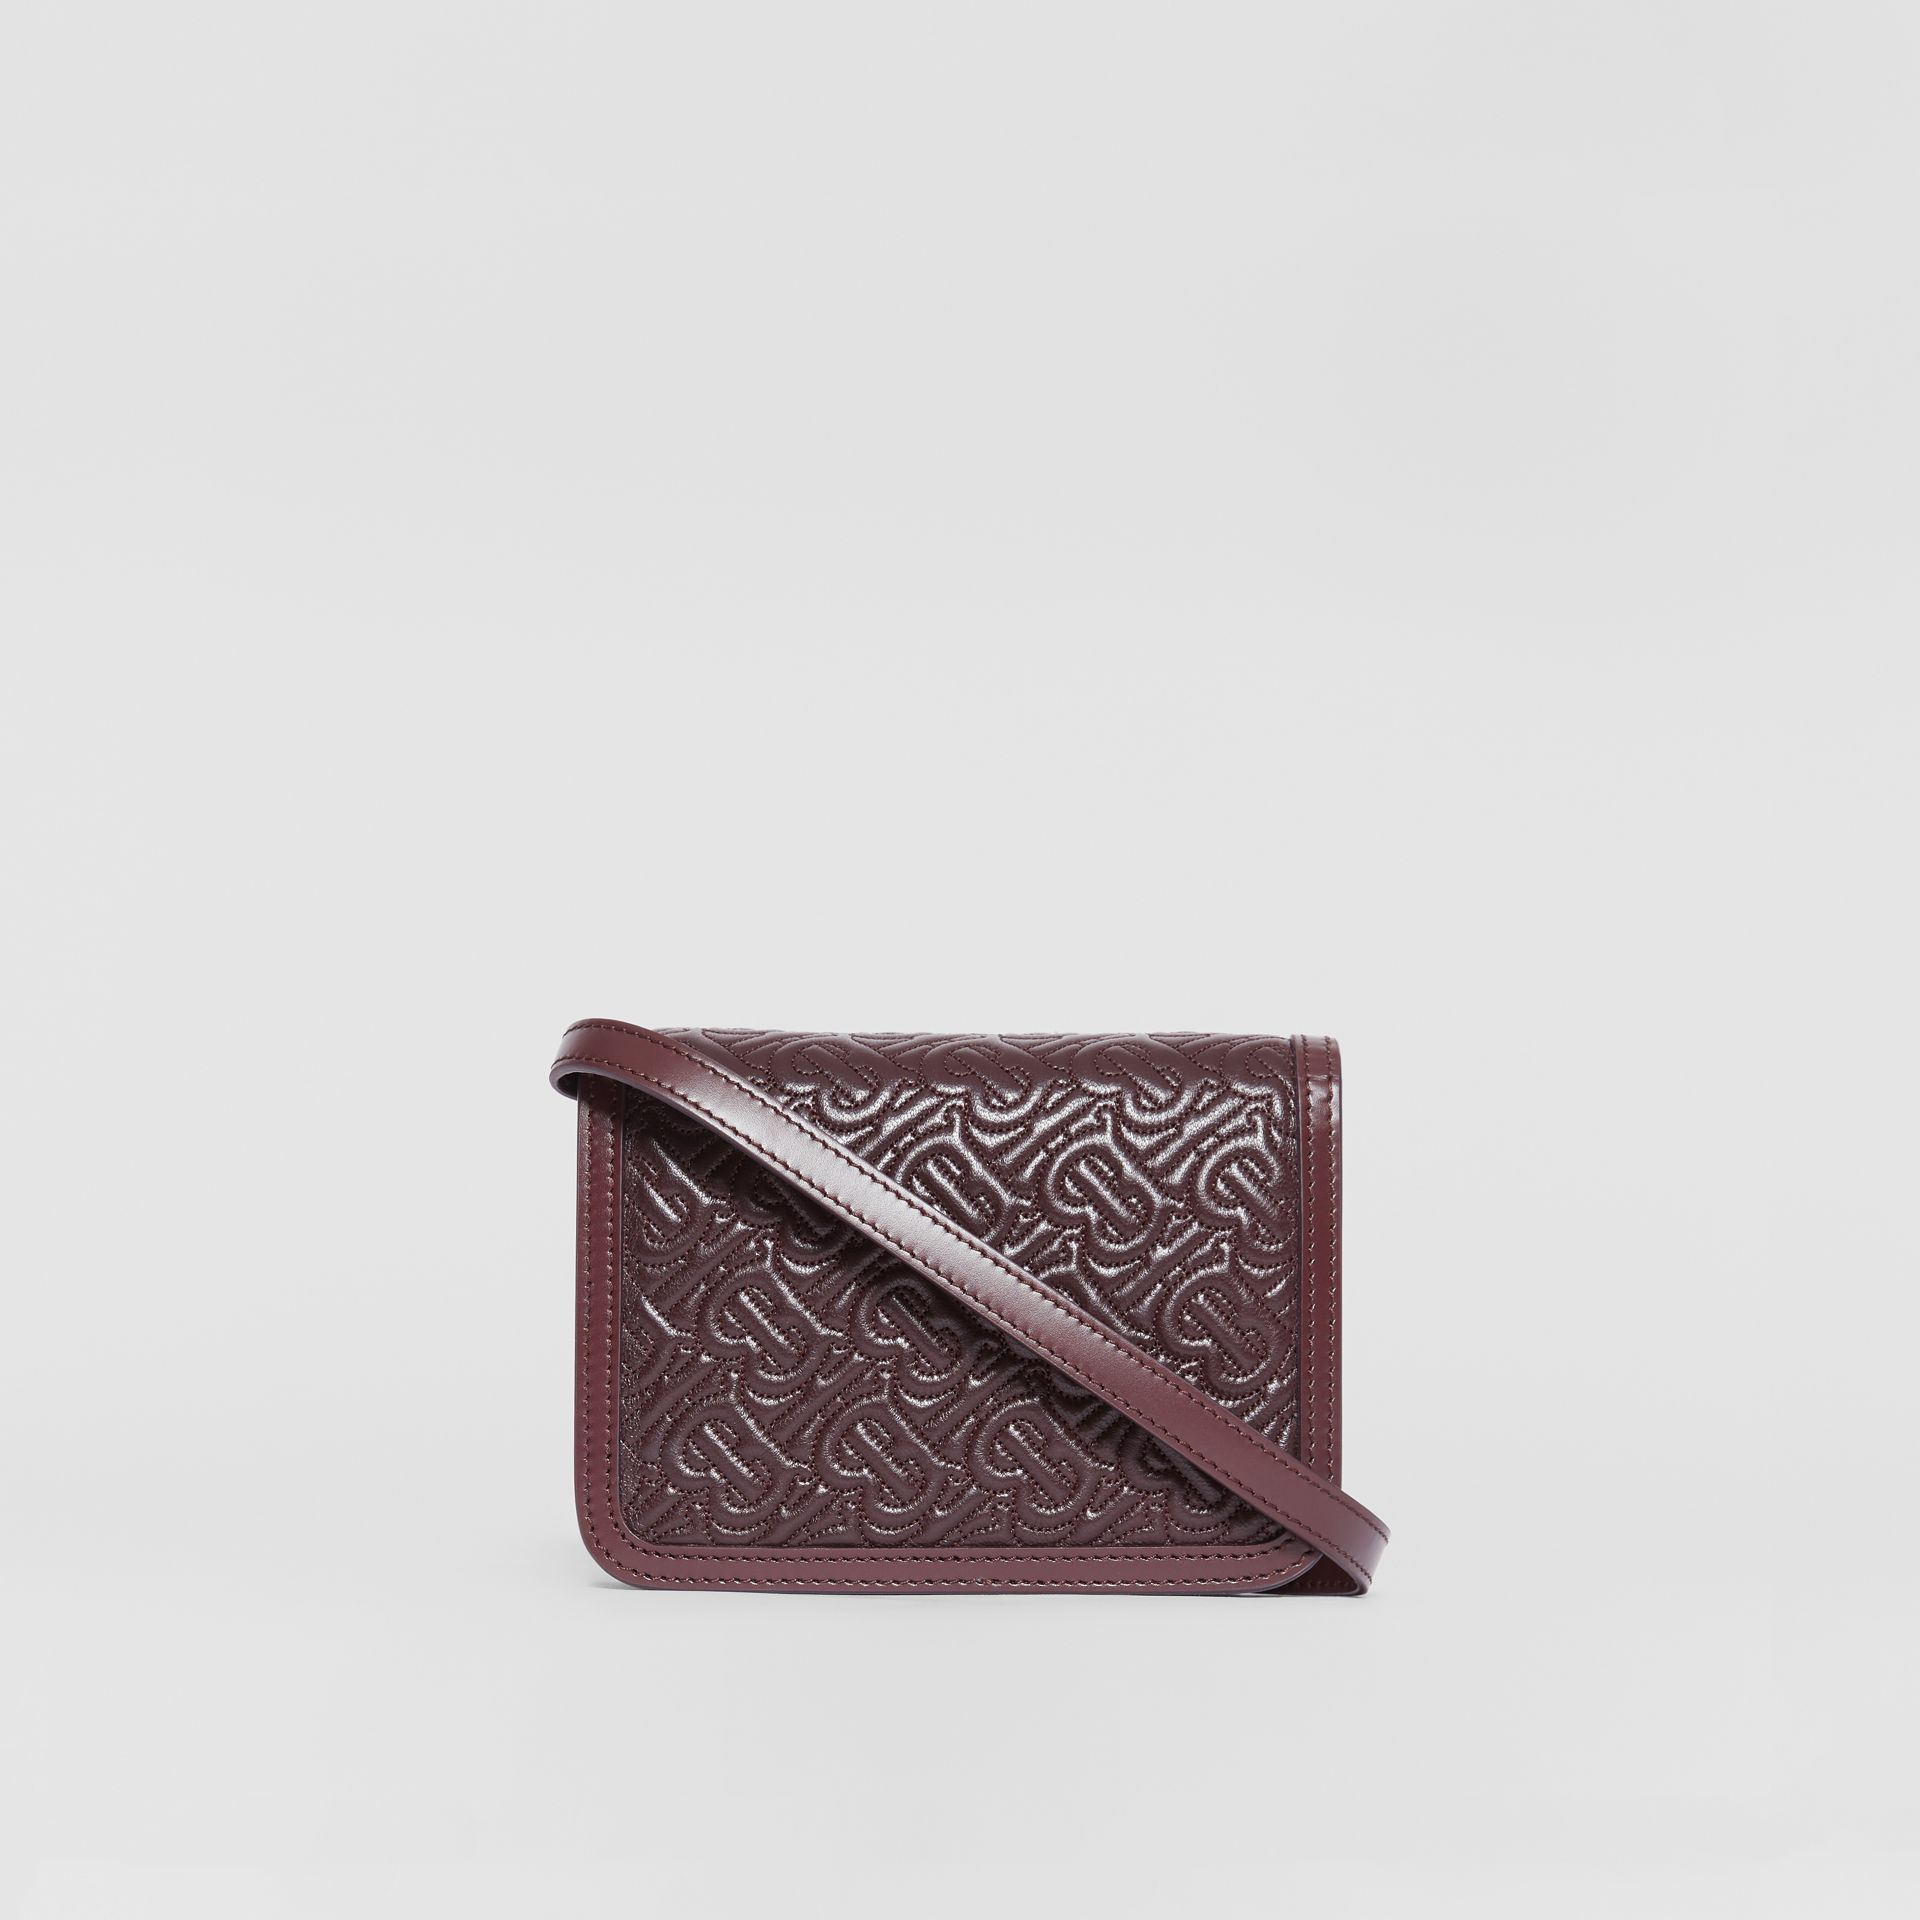 Mini Quilted Monogram Lambskin TB Bag in Dark Burgundy - Women | Burberry United Kingdom - gallery image 7